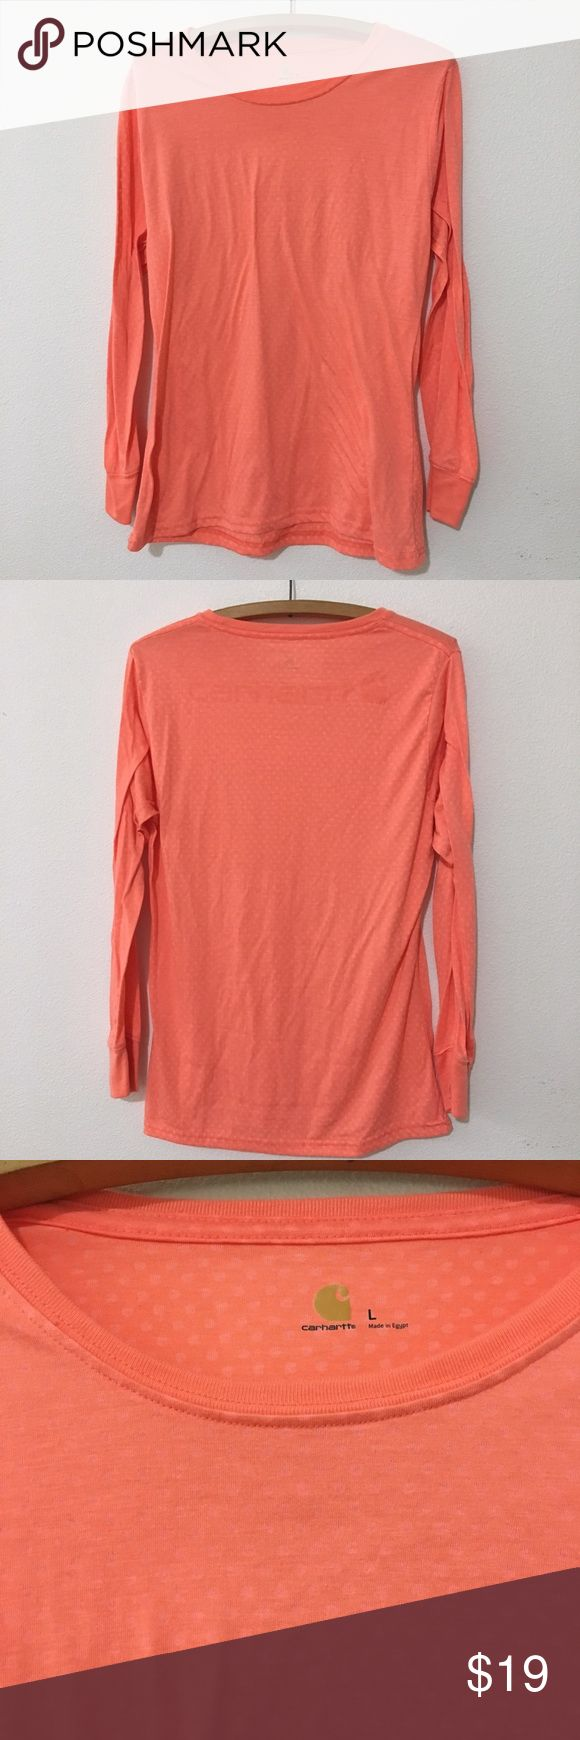 """Carhartt Polka Dot Long Sleeve Shirt Carhartt Polka Dot Long Sleeve Shirt. Peach color. A little brighter and lighter color than pic is showing. Polka dots are mini Carhartt symbols. Logo on back. Super soft.   Size: Large About 26.5"""" length (top shoulder hem to bottom)   Good preloved condition. Barely worn  Bundle fav items for a personal discount. Offers are always welcome, too! No trades or modeling. Thank you! (3) Carhartt Tops Tees - Long Sleeve"""